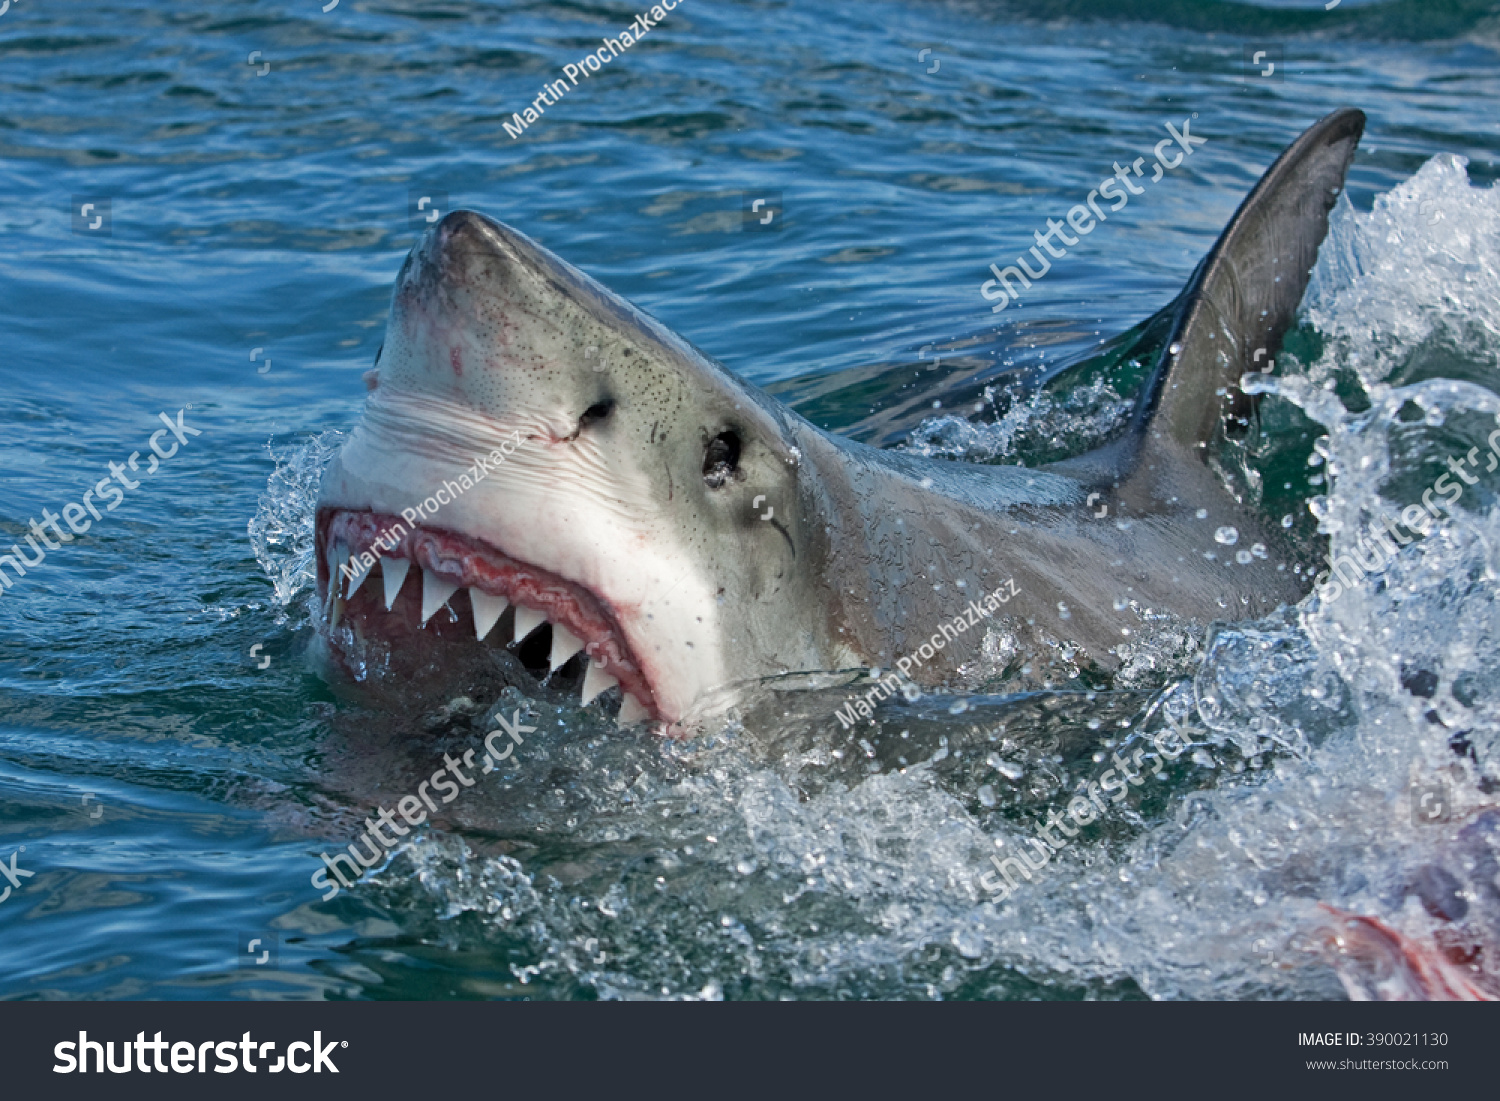 carcharodon carcharias great white shark 646 the great white shark, carcharodon carcharias (lamnidae), and the tiger shark, galeocerdo cuvier (carcharhin- idae), are two of the largest species of macropredatory sharks both are known to prey on dolphins (delphini.